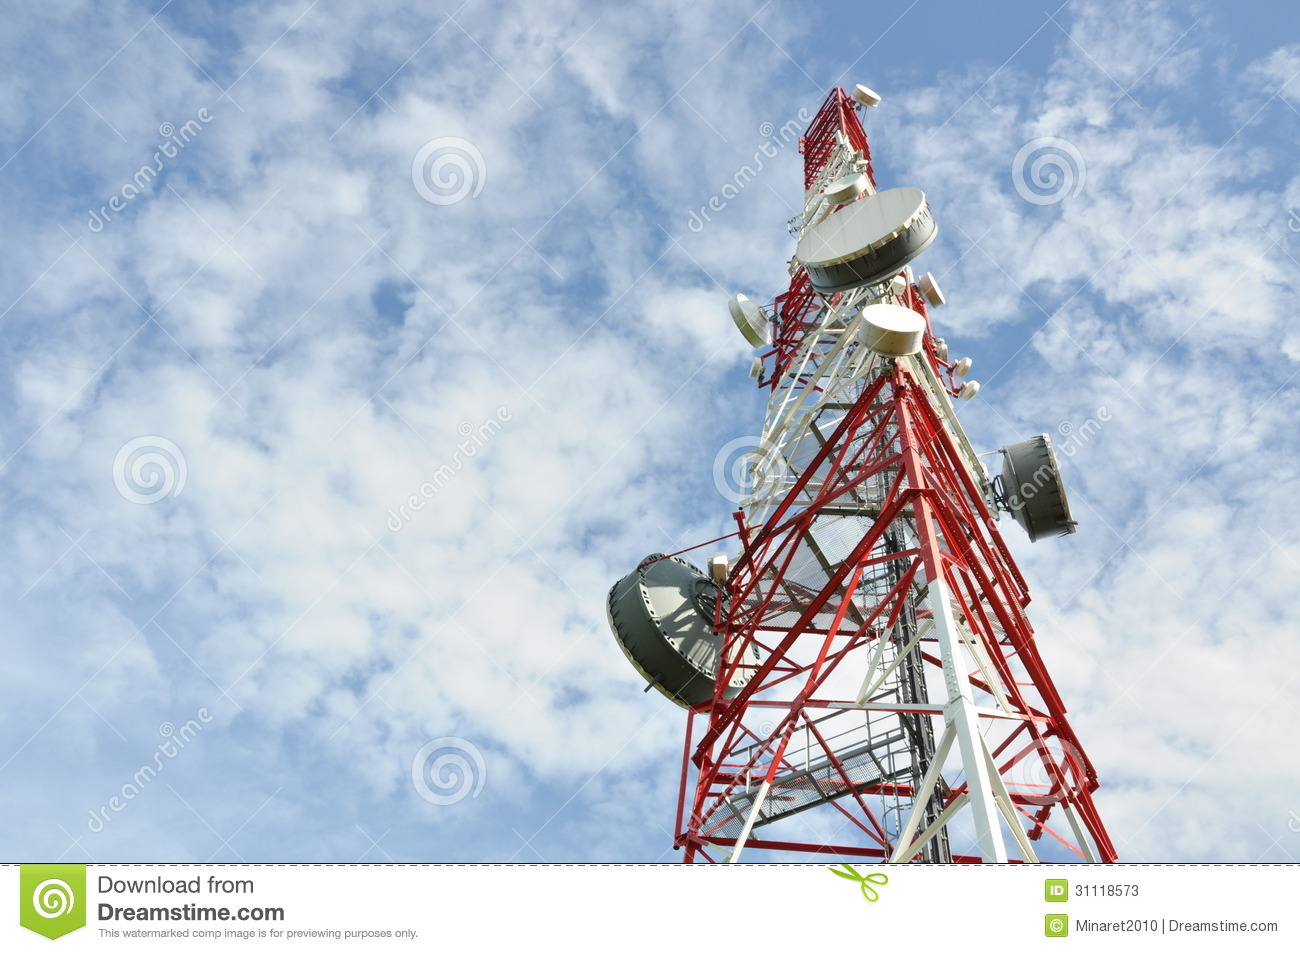 Tower With Cell Phone Antenna System Stock Image